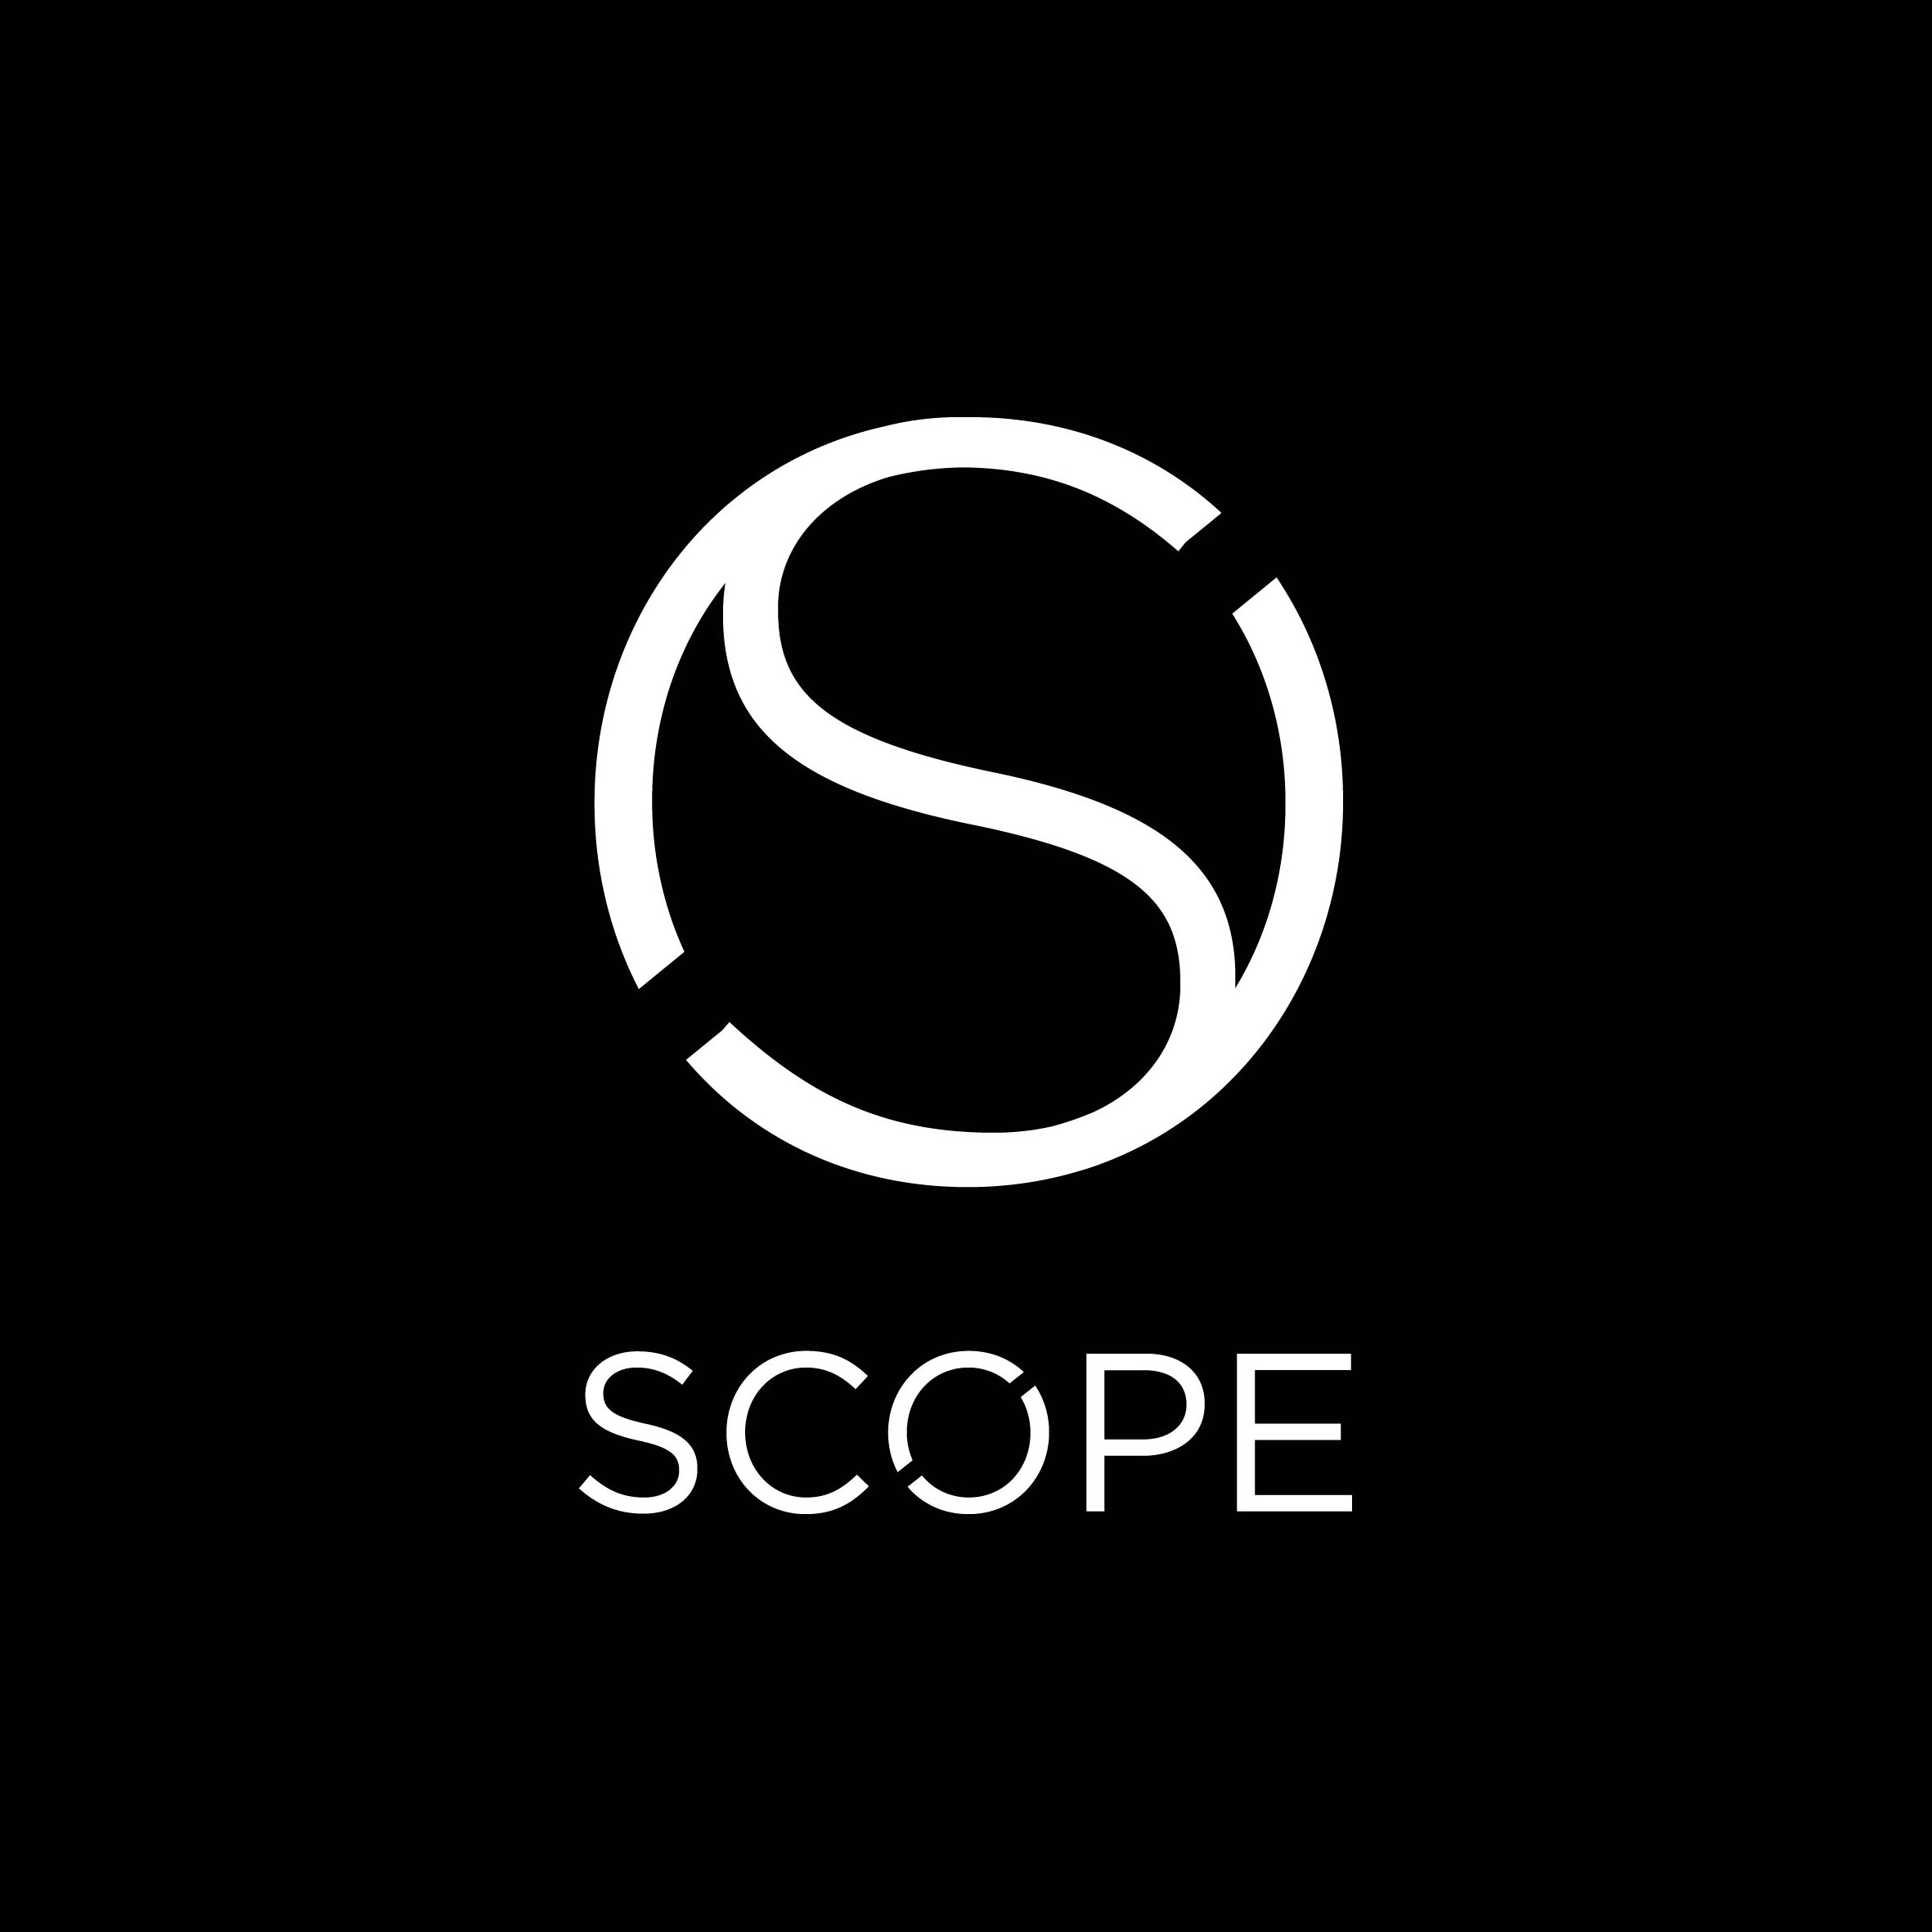 SCOPE_RAW_LOGO_WHITEonBlack_INSTA.jpg